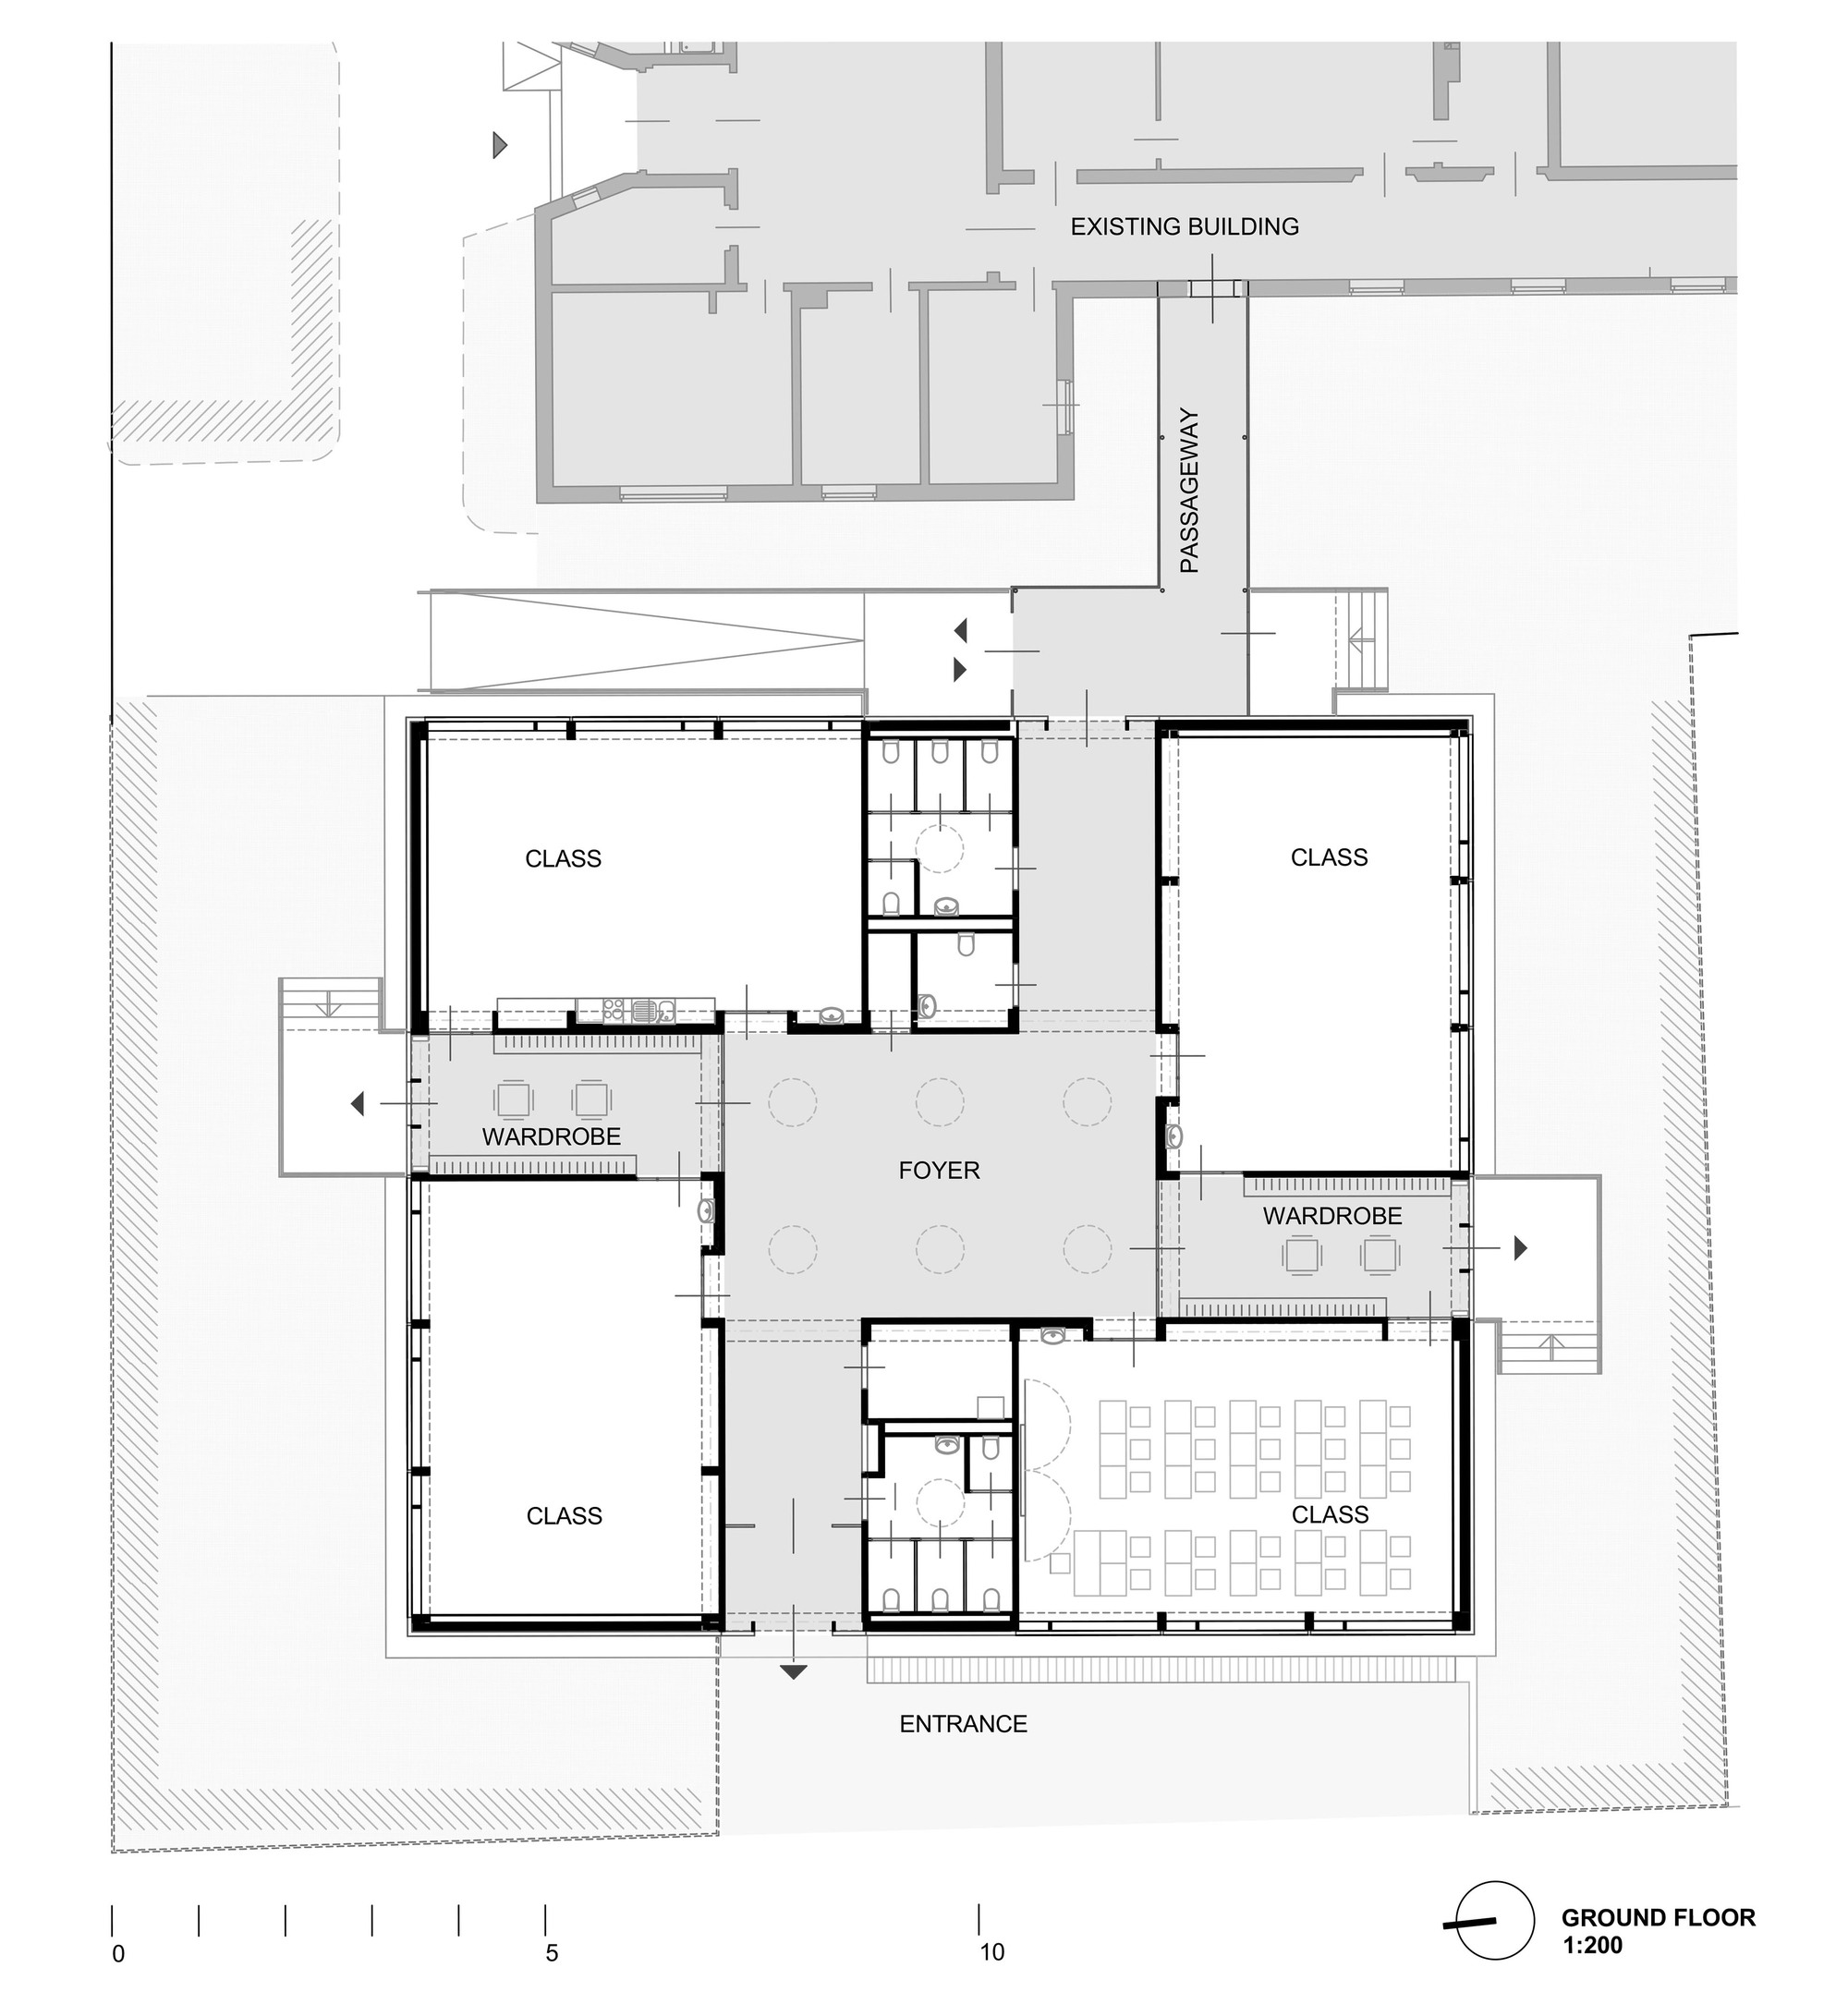 Architecture Elementary School gallery of elementary school baslergasse / kirsch architecture - 14